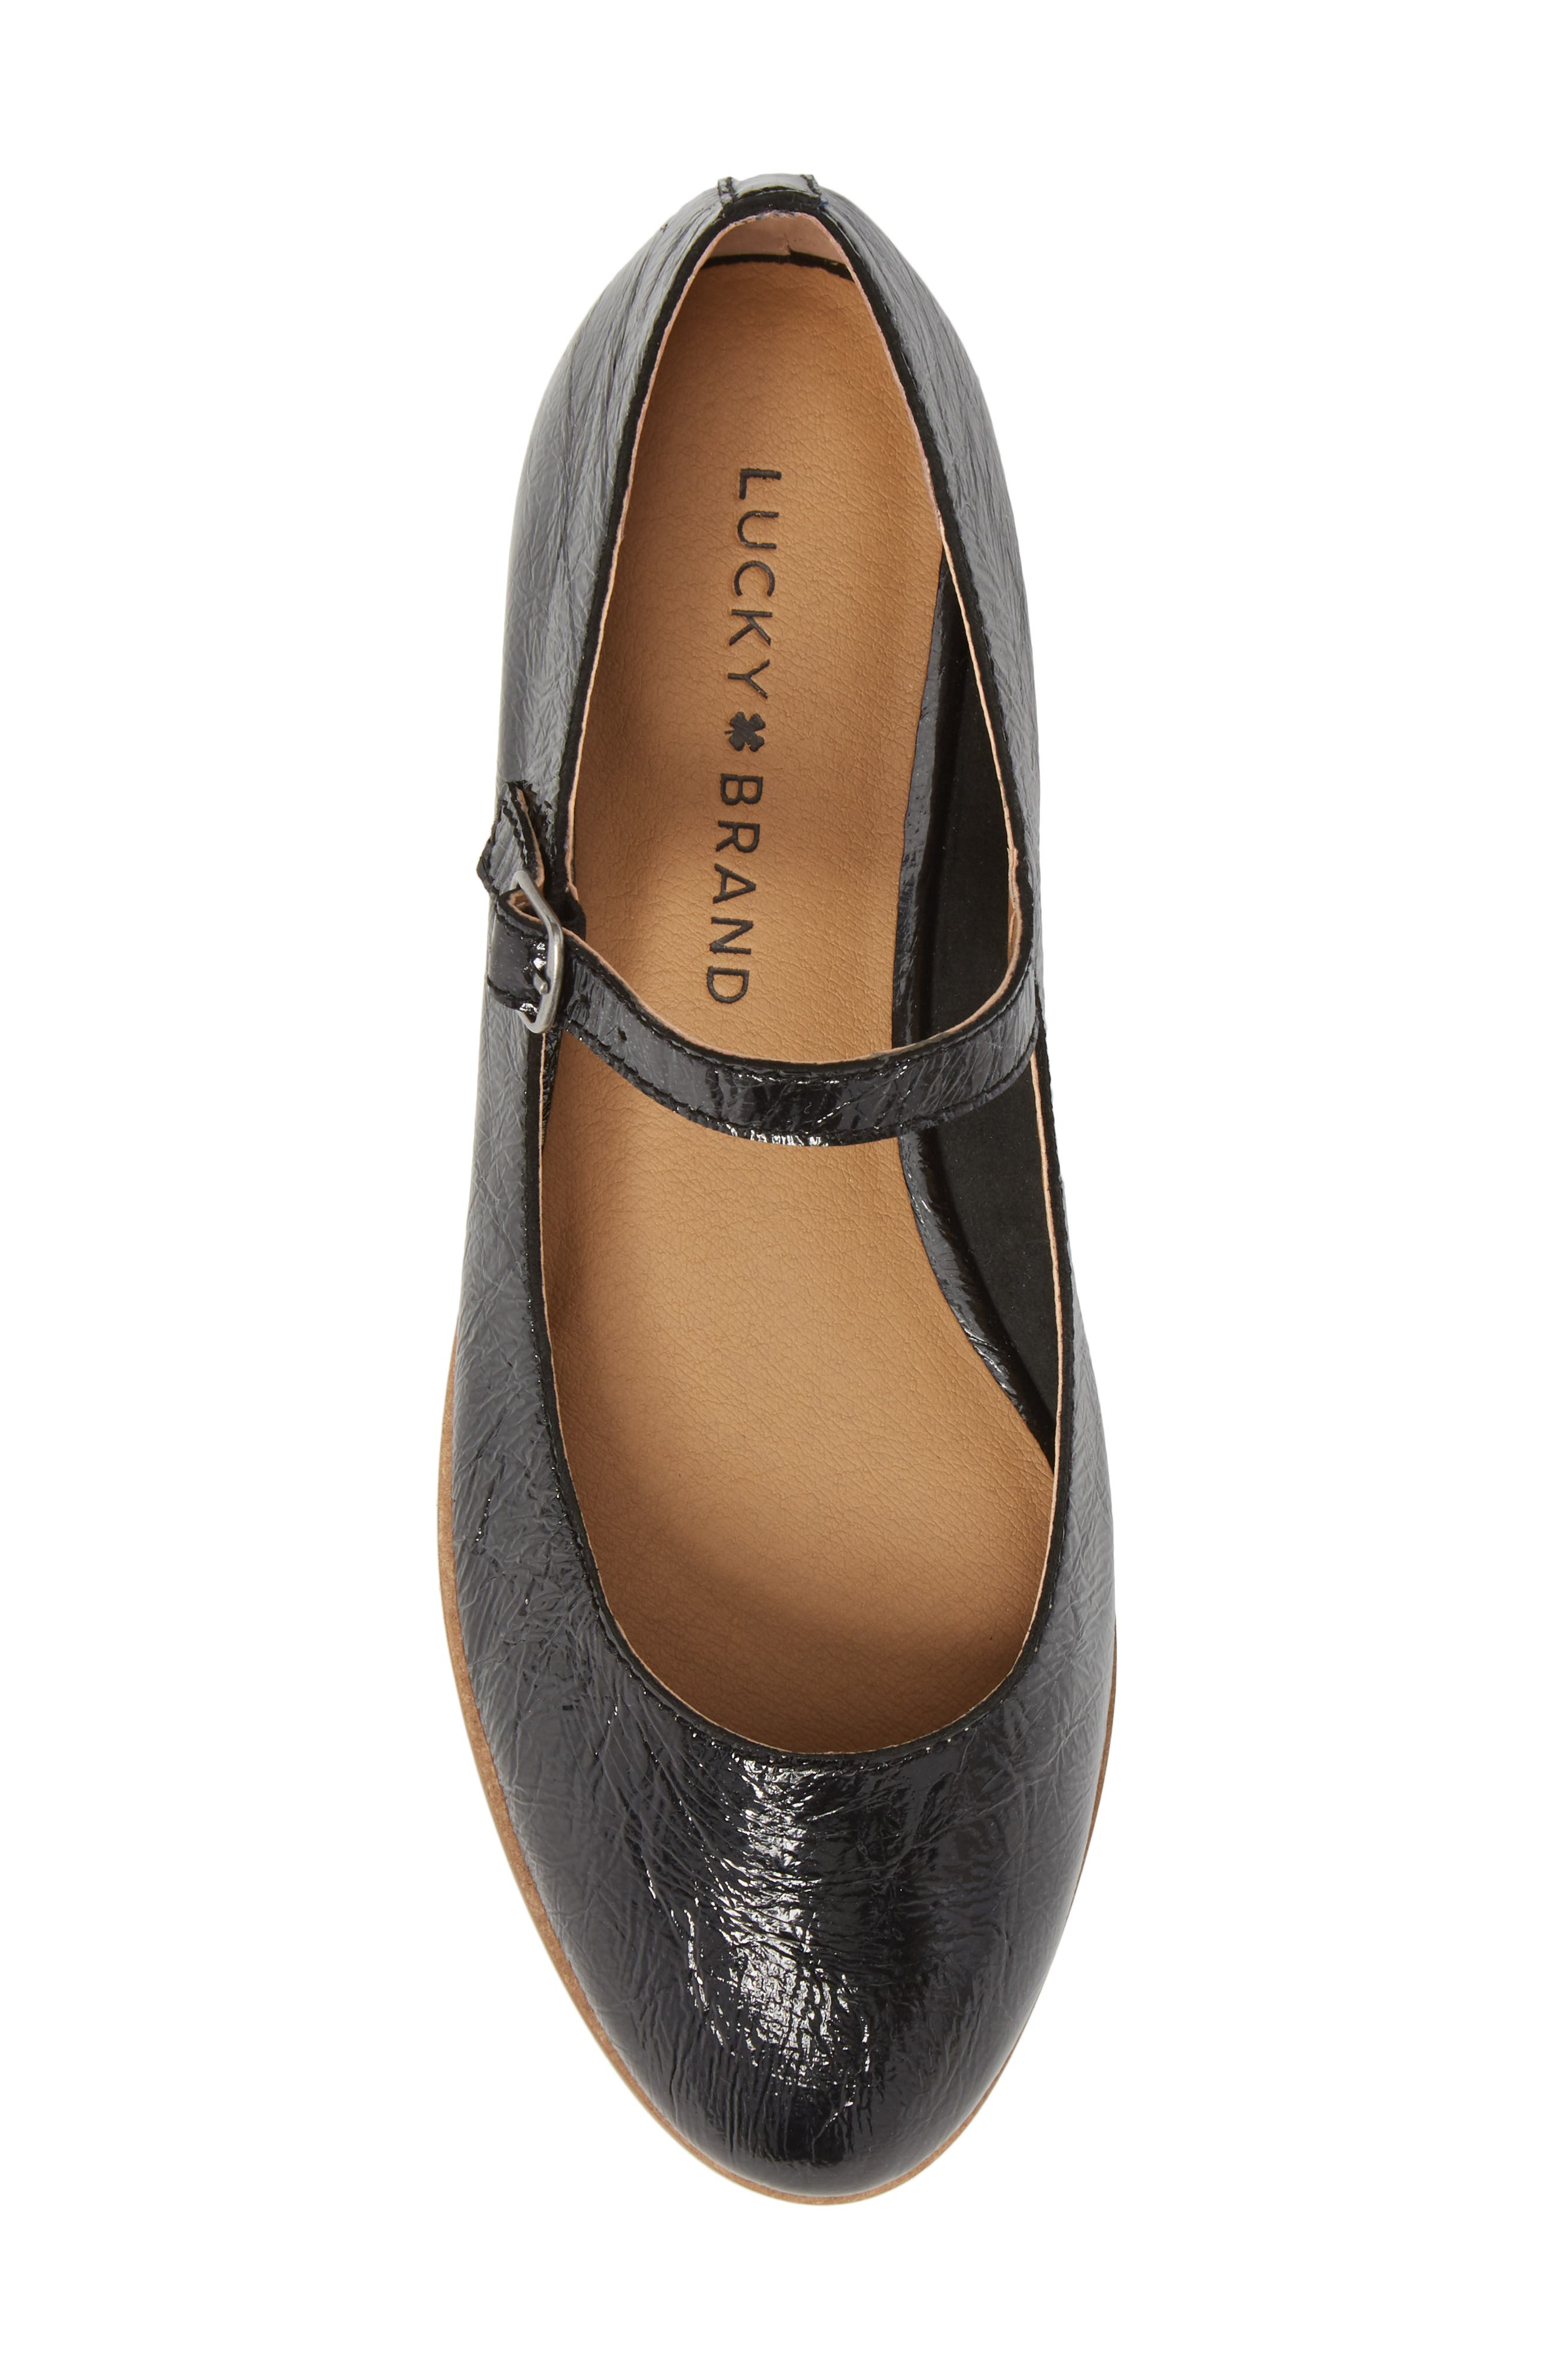 Ceentana Mary Jane Flat,                             Alternate thumbnail 5, color,                             BLACK LEATHER